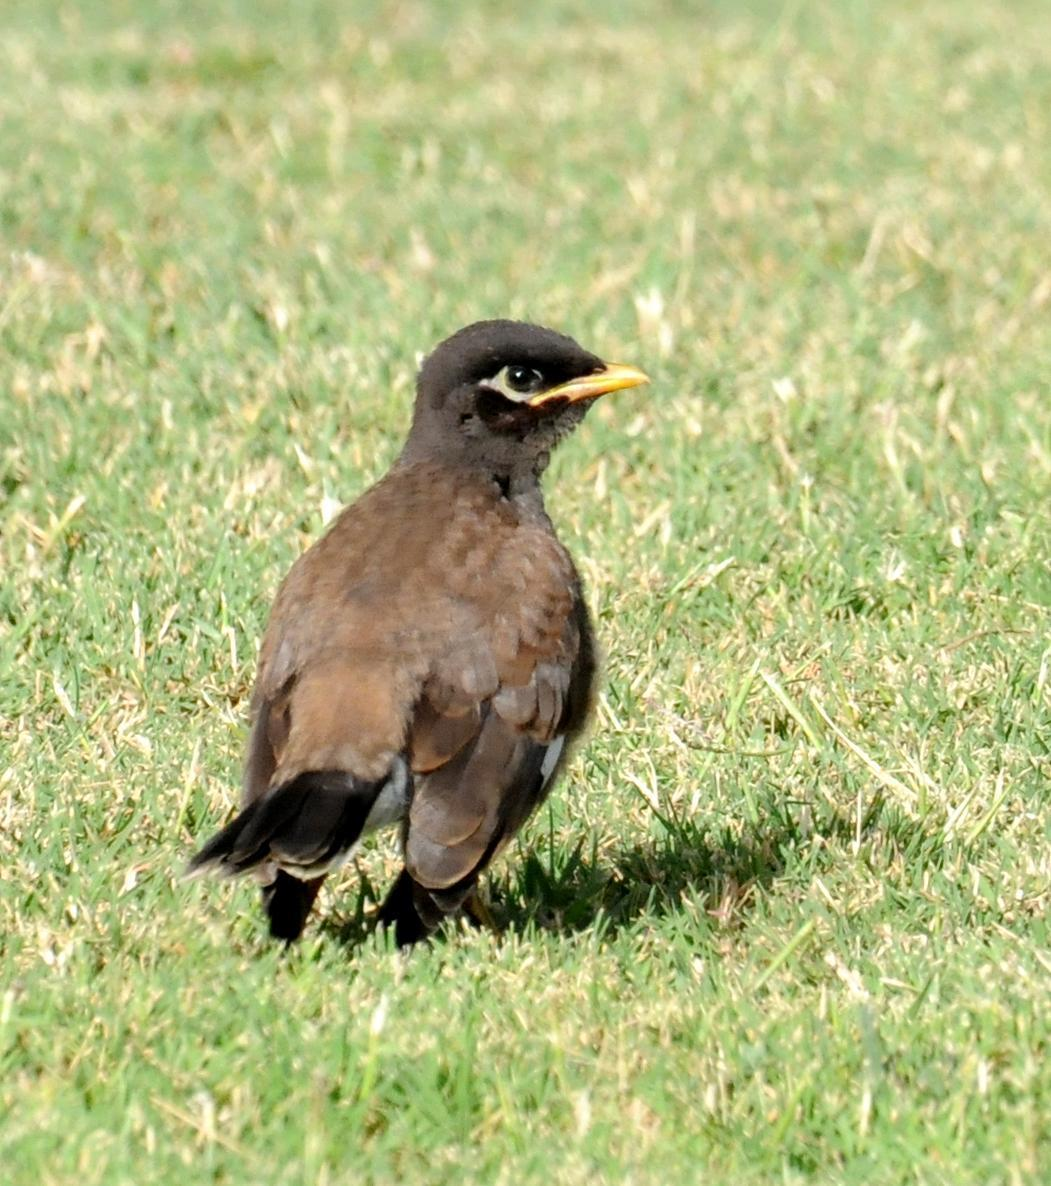 Common Myna Photo by Steven Mlodinow